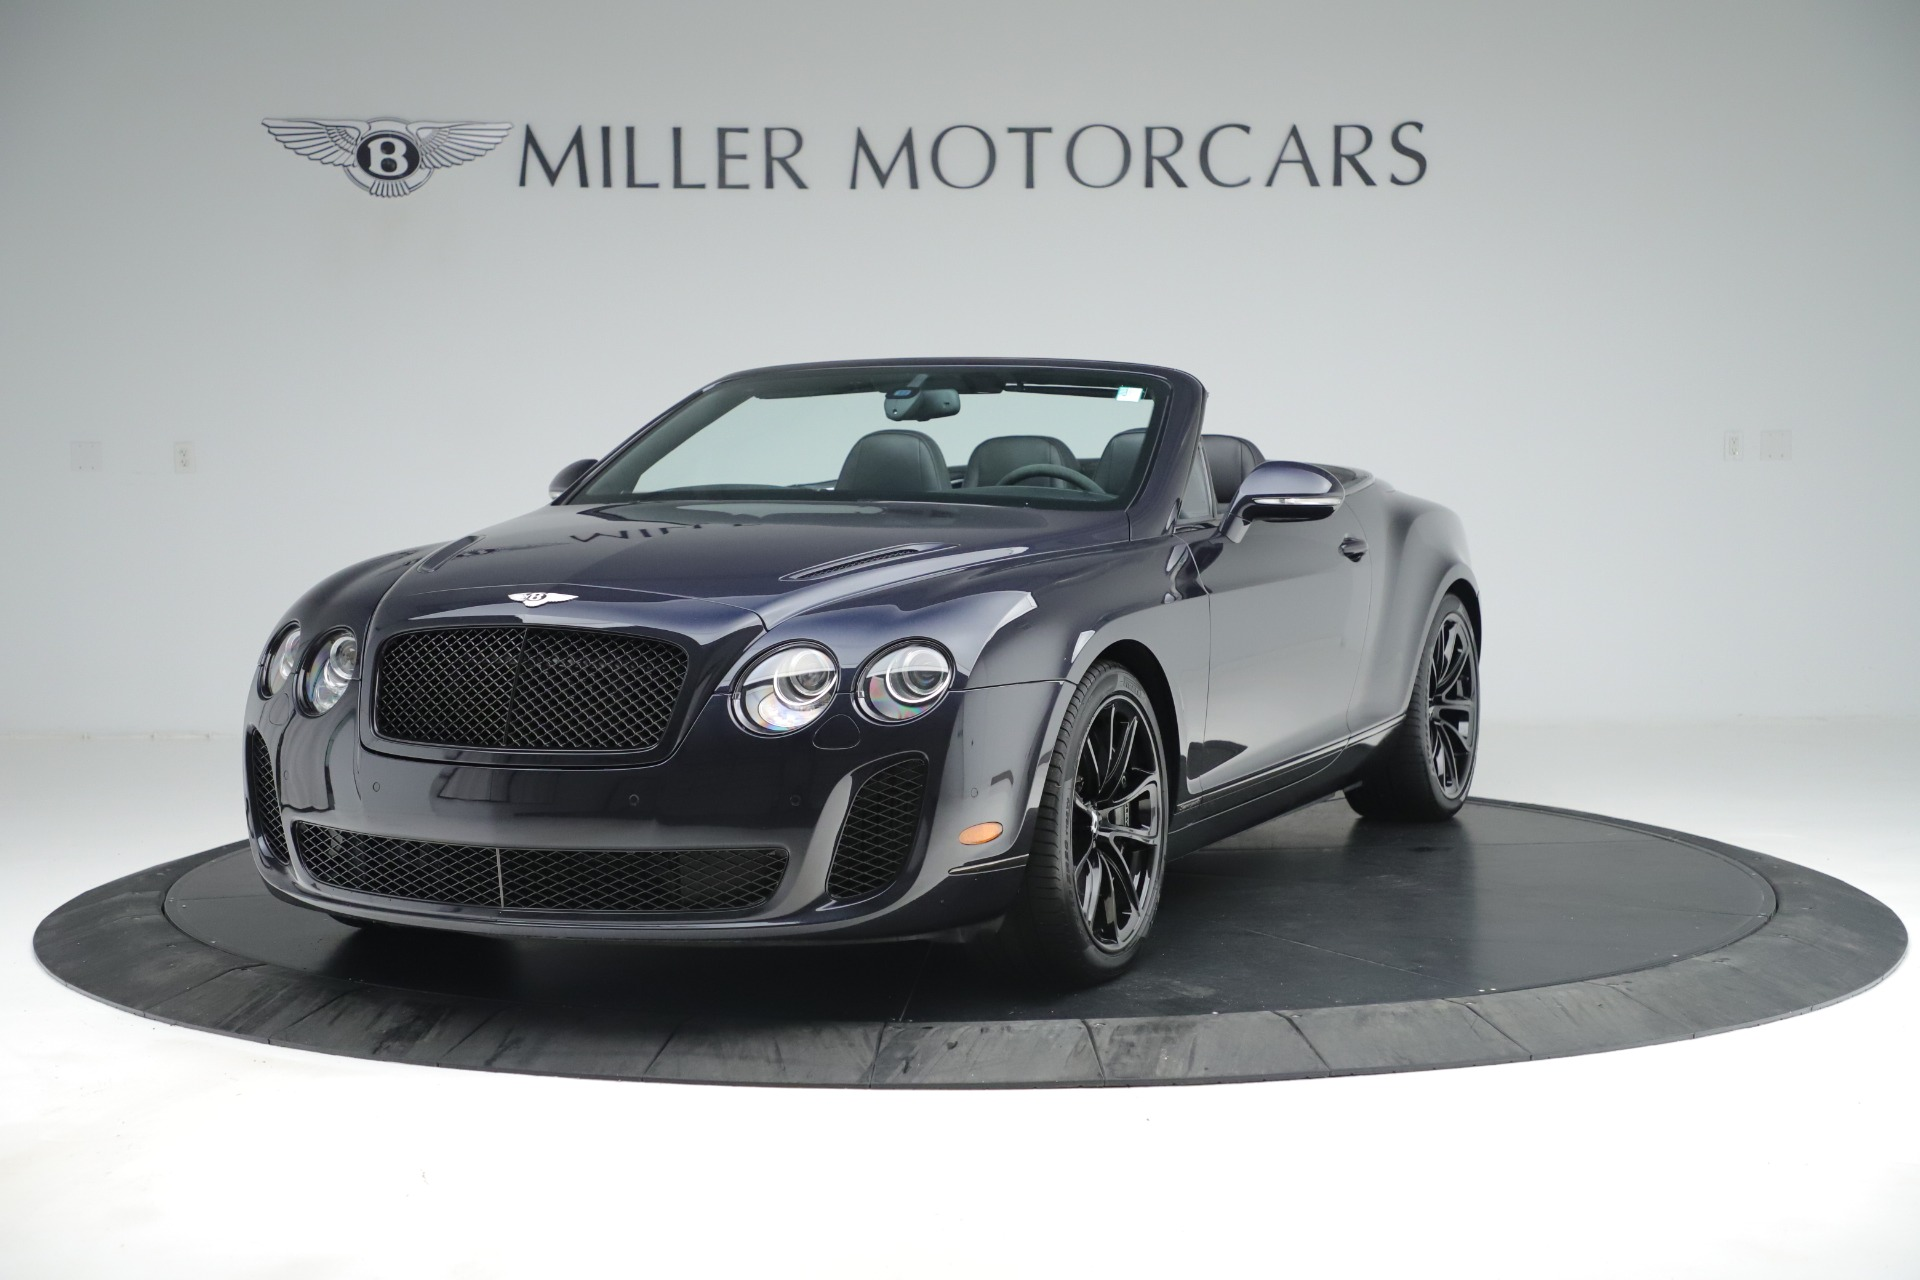 Used 2012 Bentley Continental GT Supersports for sale Sold at Bugatti of Greenwich in Greenwich CT 06830 1